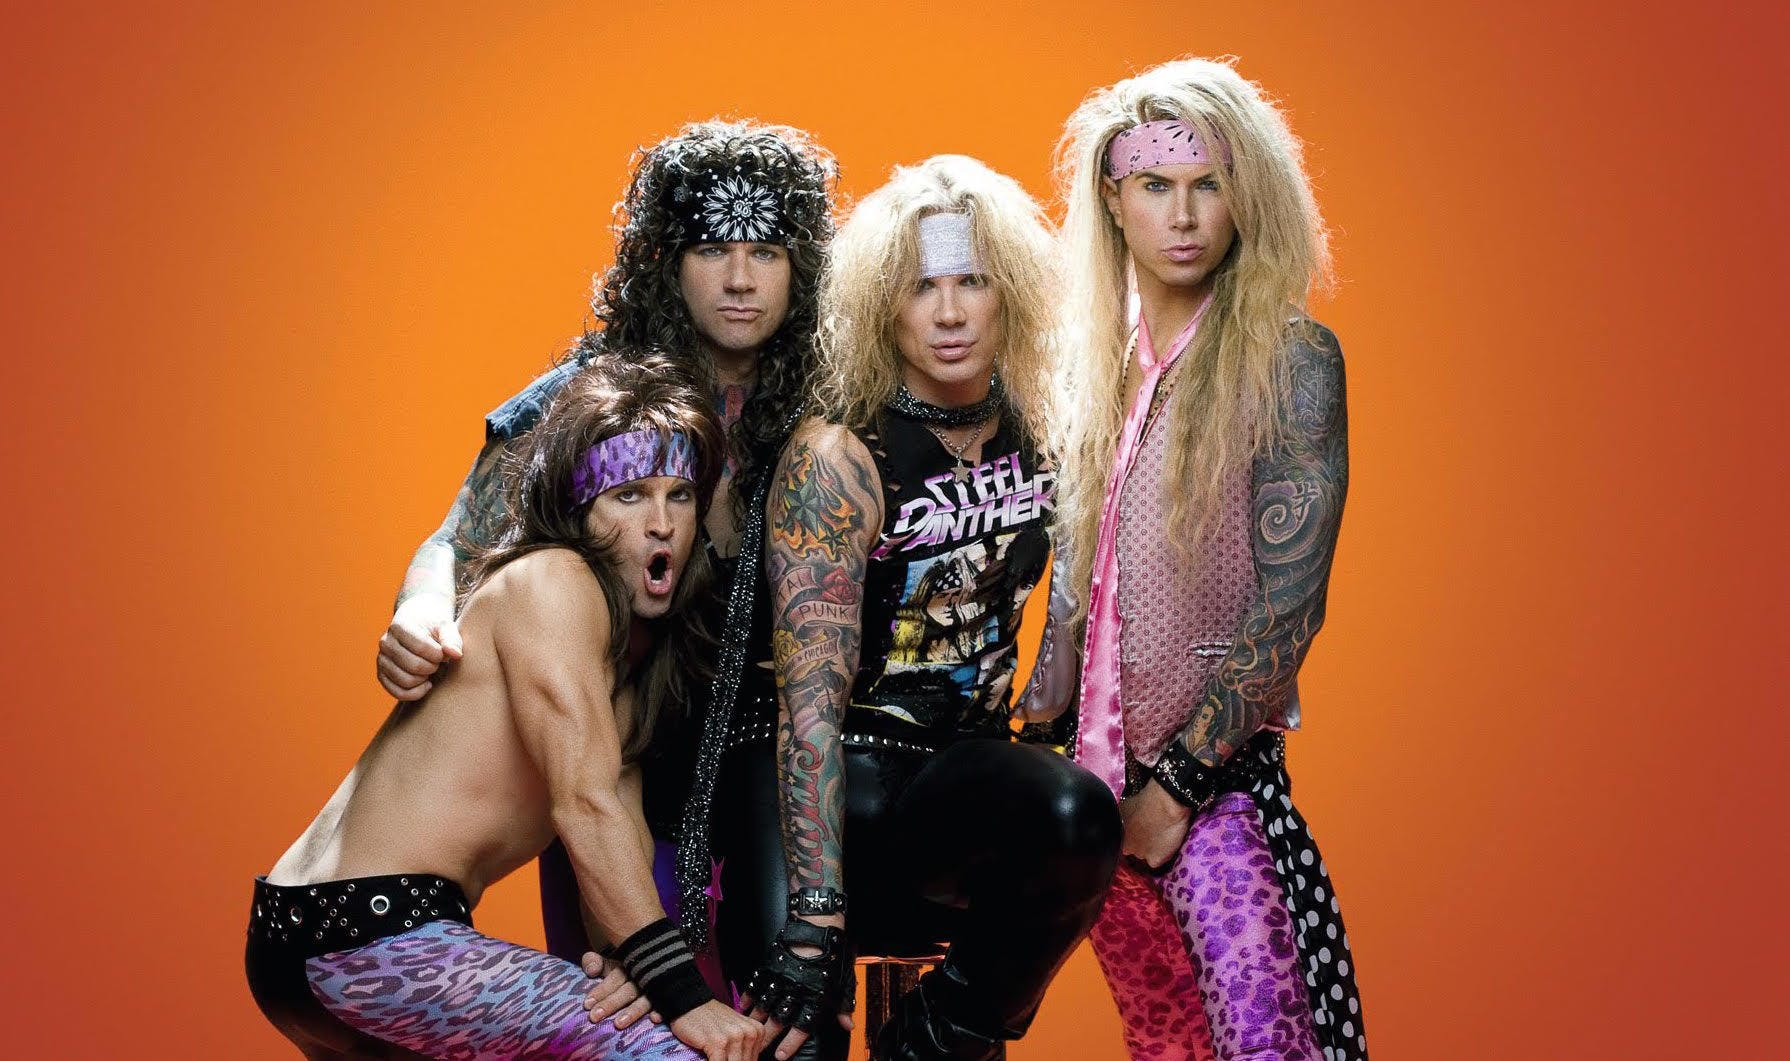 Steel Panther aren't fussed about 'pussy melter' guitar effect pedal controversy